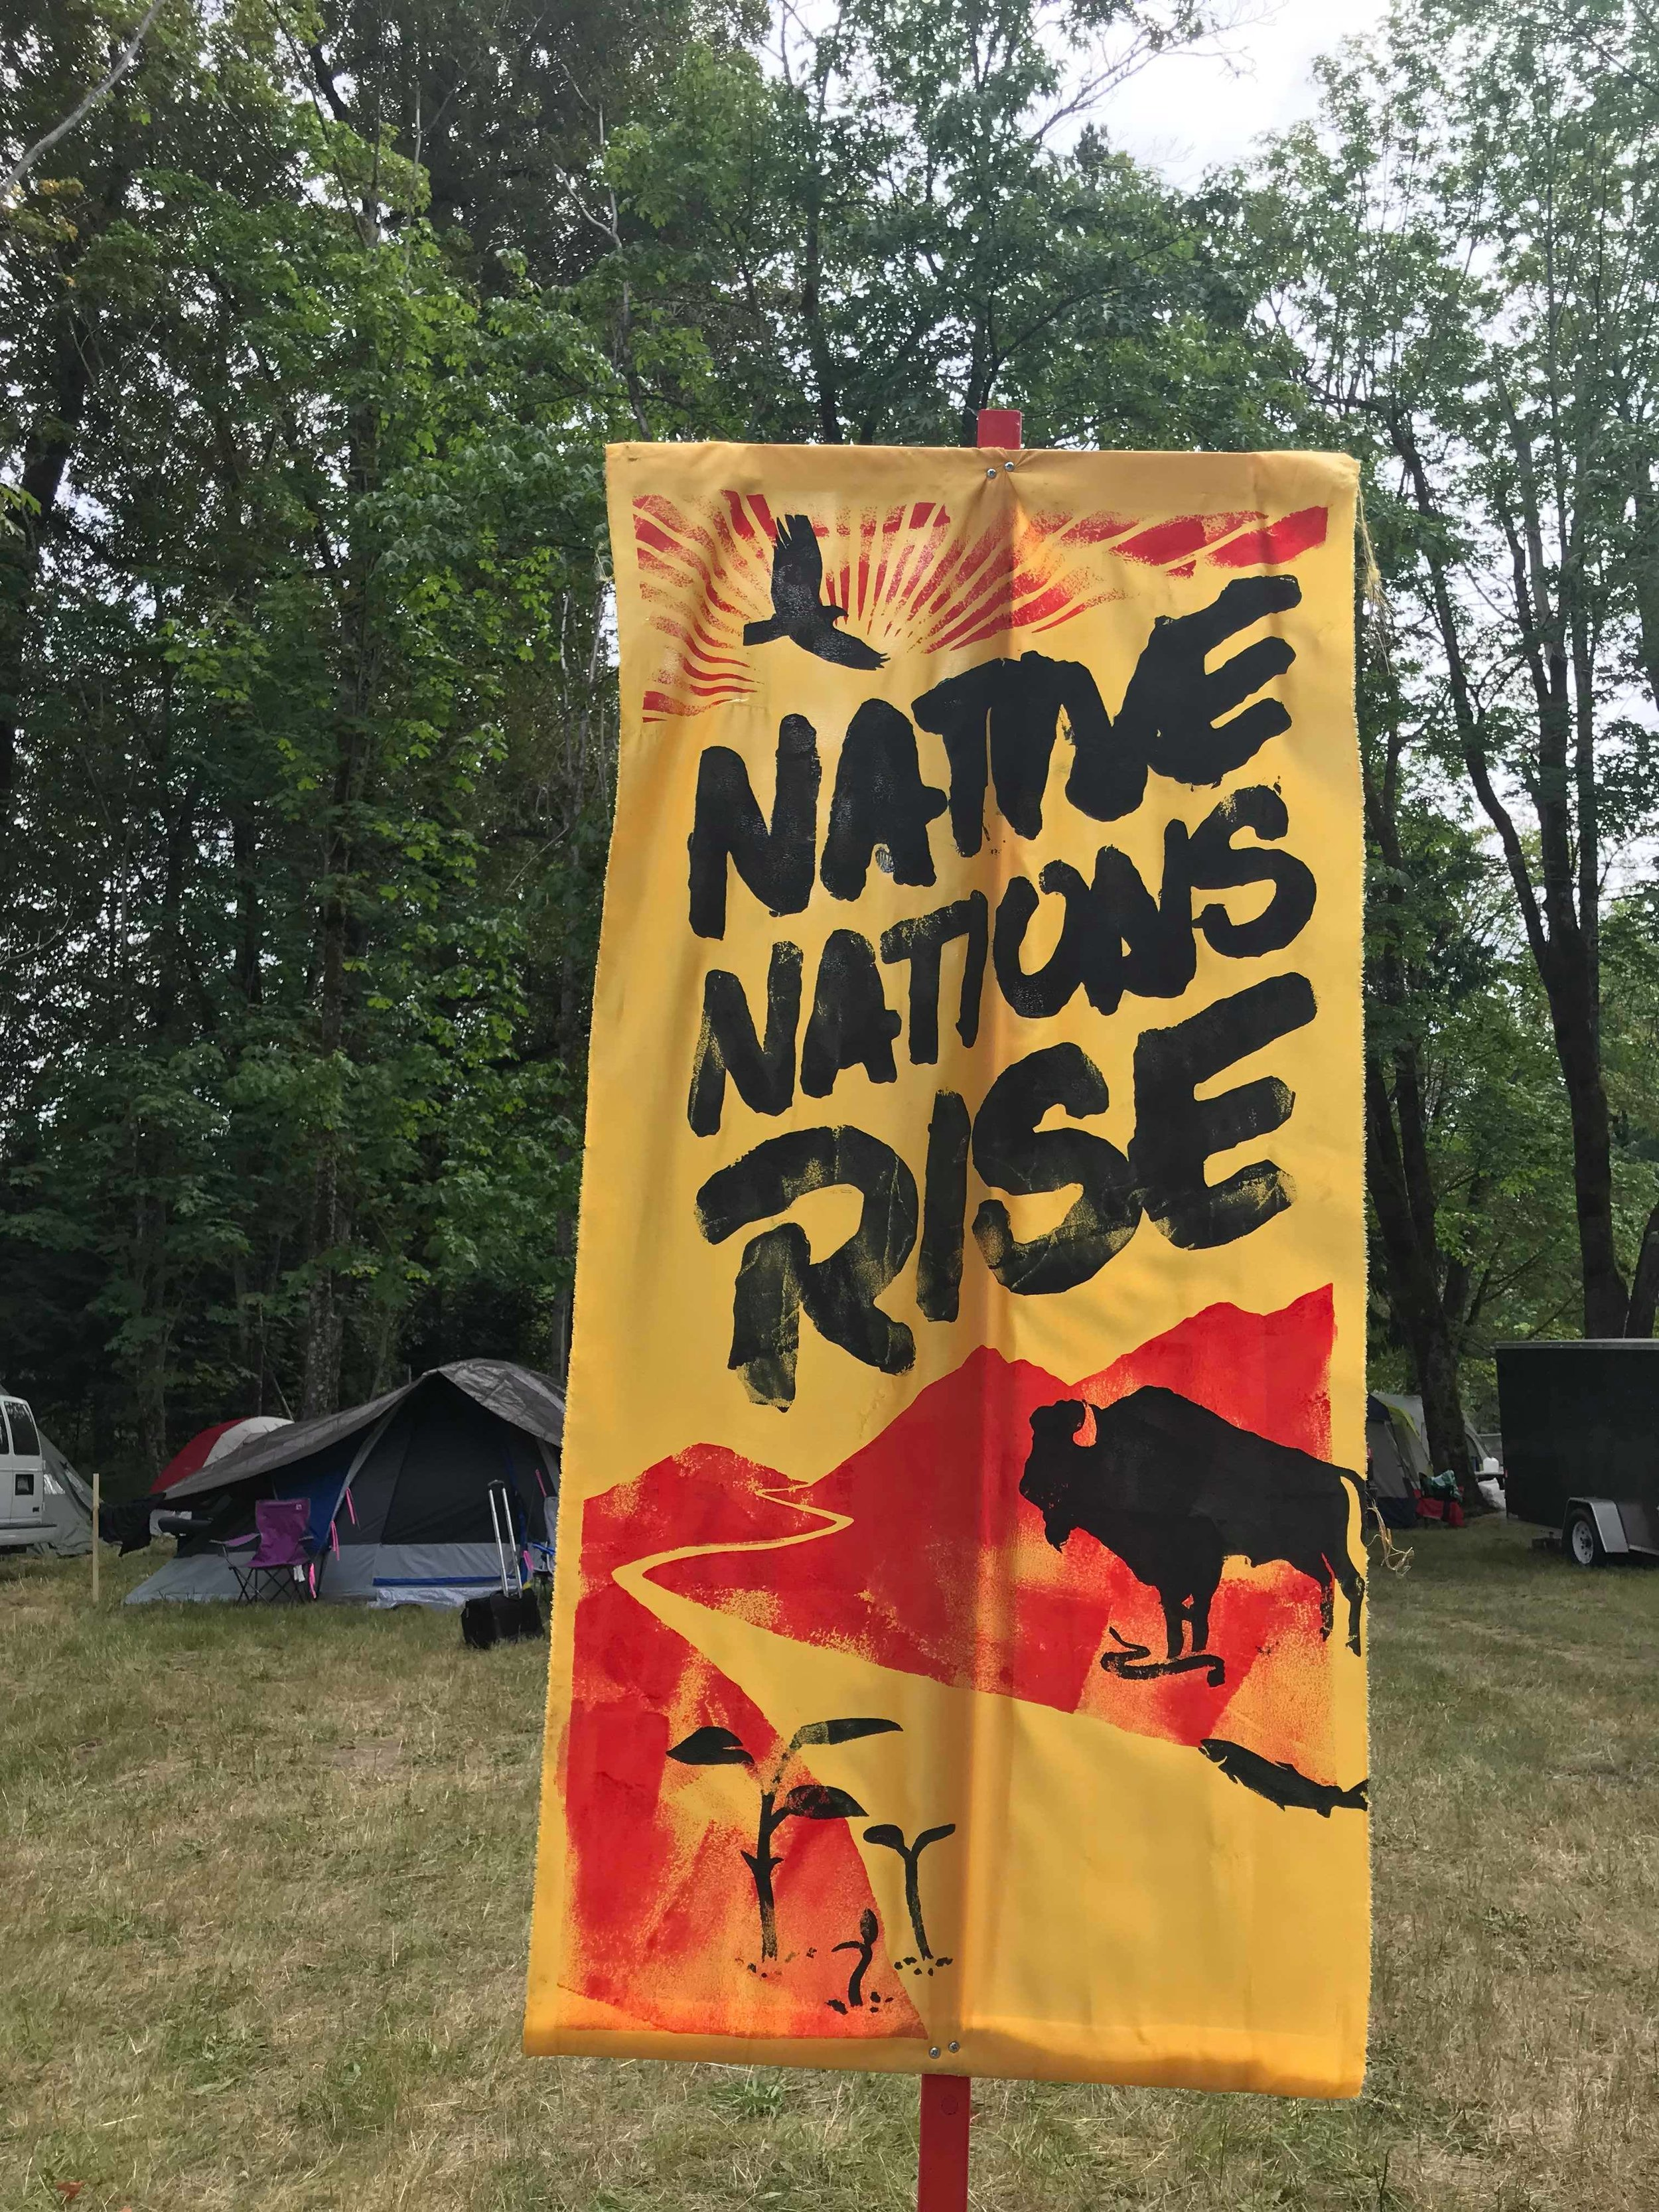 Banner from the Native Nations Rise march in Washington, D.C., 2017.